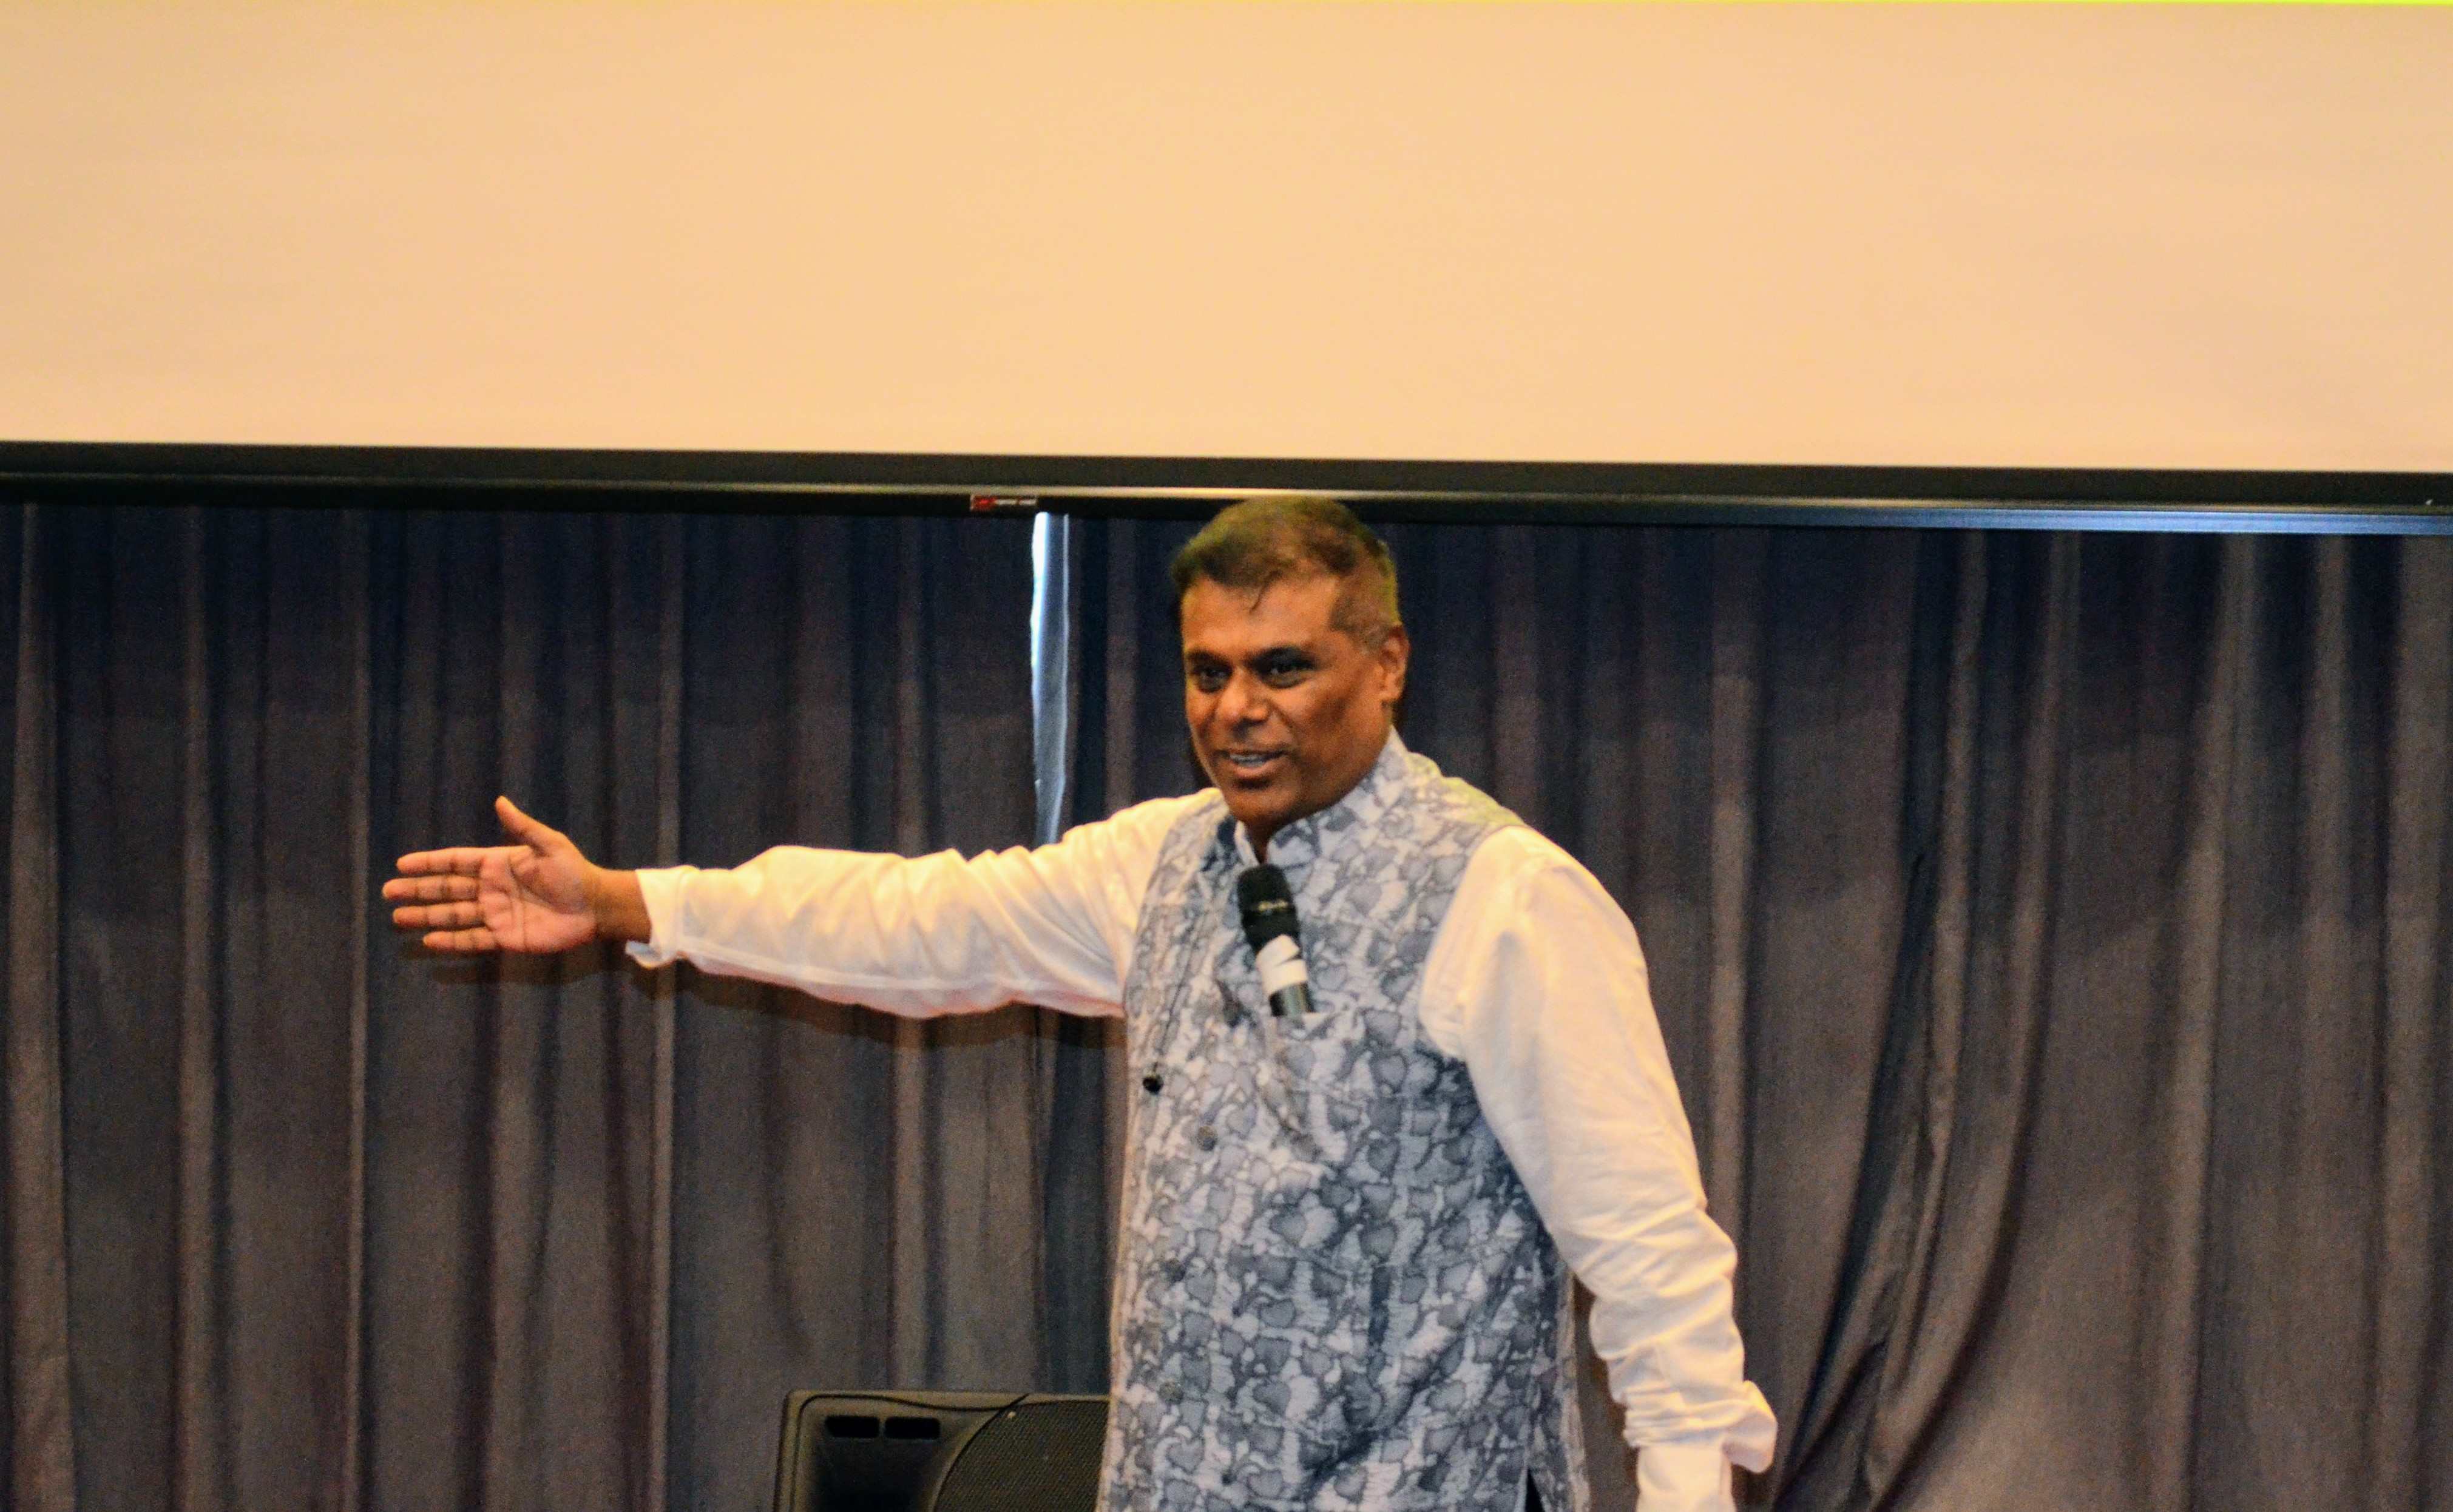 Ashish Vidyarthi engaging with audience and giving valuable acting tips during his Masterclass in Singapore Photo: Connected to India